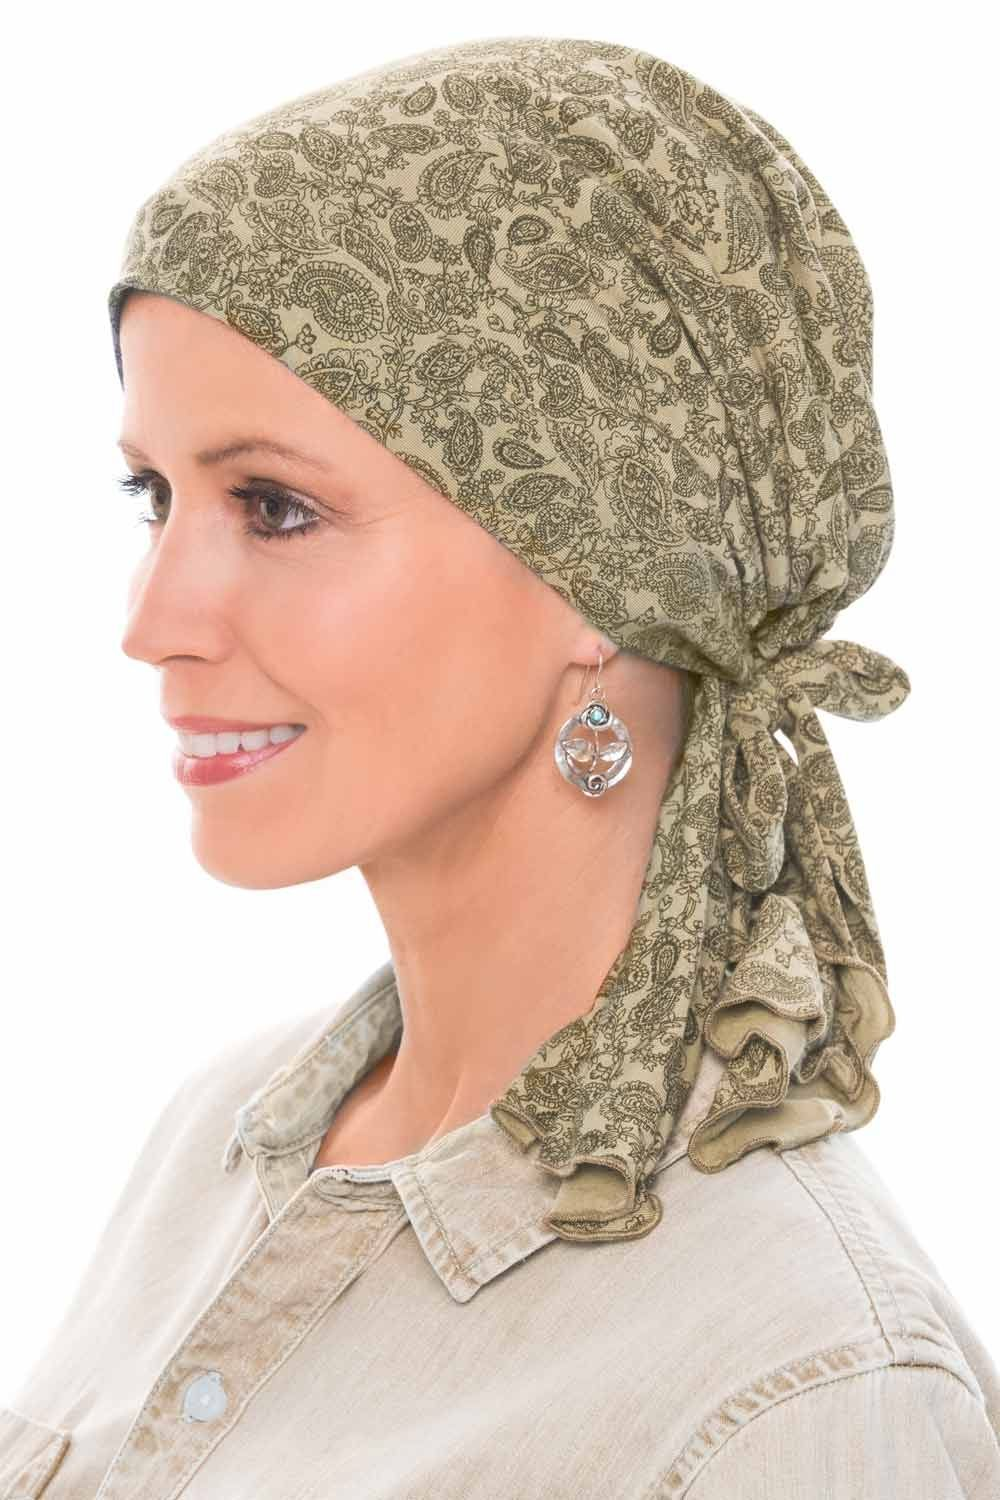 Pre Tied Scarves - So Simple Scarf in Silky Soft Bamboo by Cardani #tieheadscarves